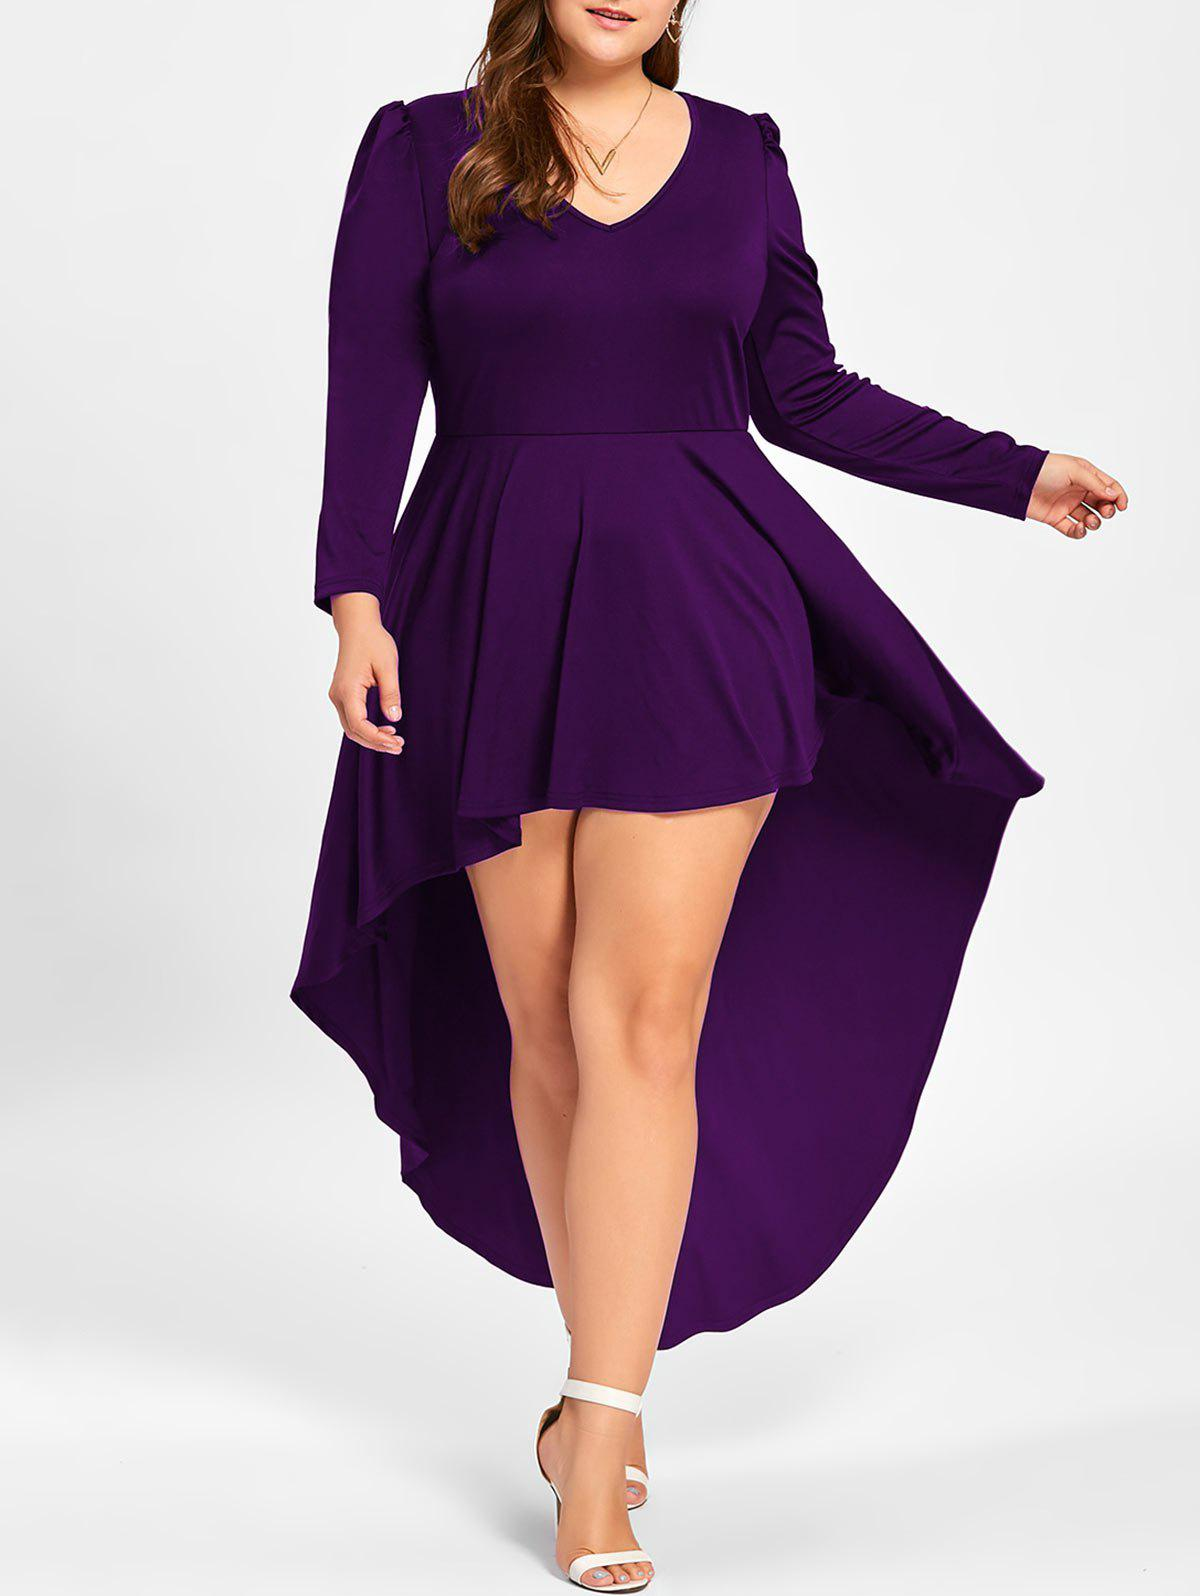 Plus Size Long Sleeve Cocktail DressWOMEN<br><br>Size: 3XL; Color: DEEP PURPLE; Style: Club; Material: Polyester,Spandex; Silhouette: A-Line; Dresses Length: Ankle-Length; Neckline: V-Neck; Sleeve Length: Long Sleeves; Pattern Type: Solid Color; With Belt: No; Season: Fall,Spring; Weight: 0.4500kg; Package Contents: 1 x Dress;